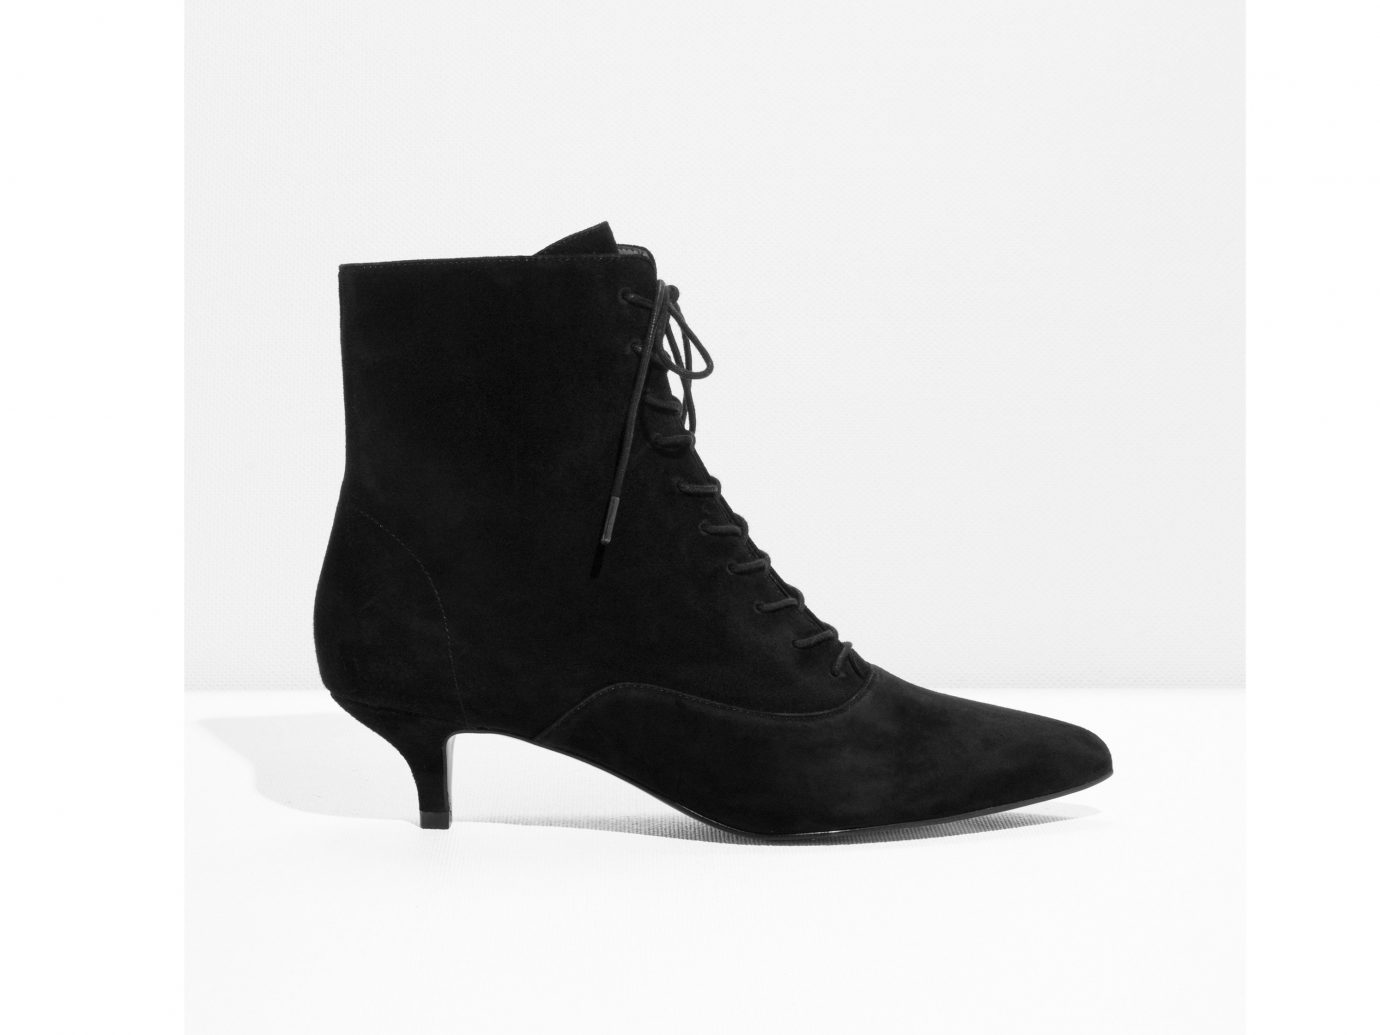 Style + Design clothing footwear boot leather suede textile leg human body material feet